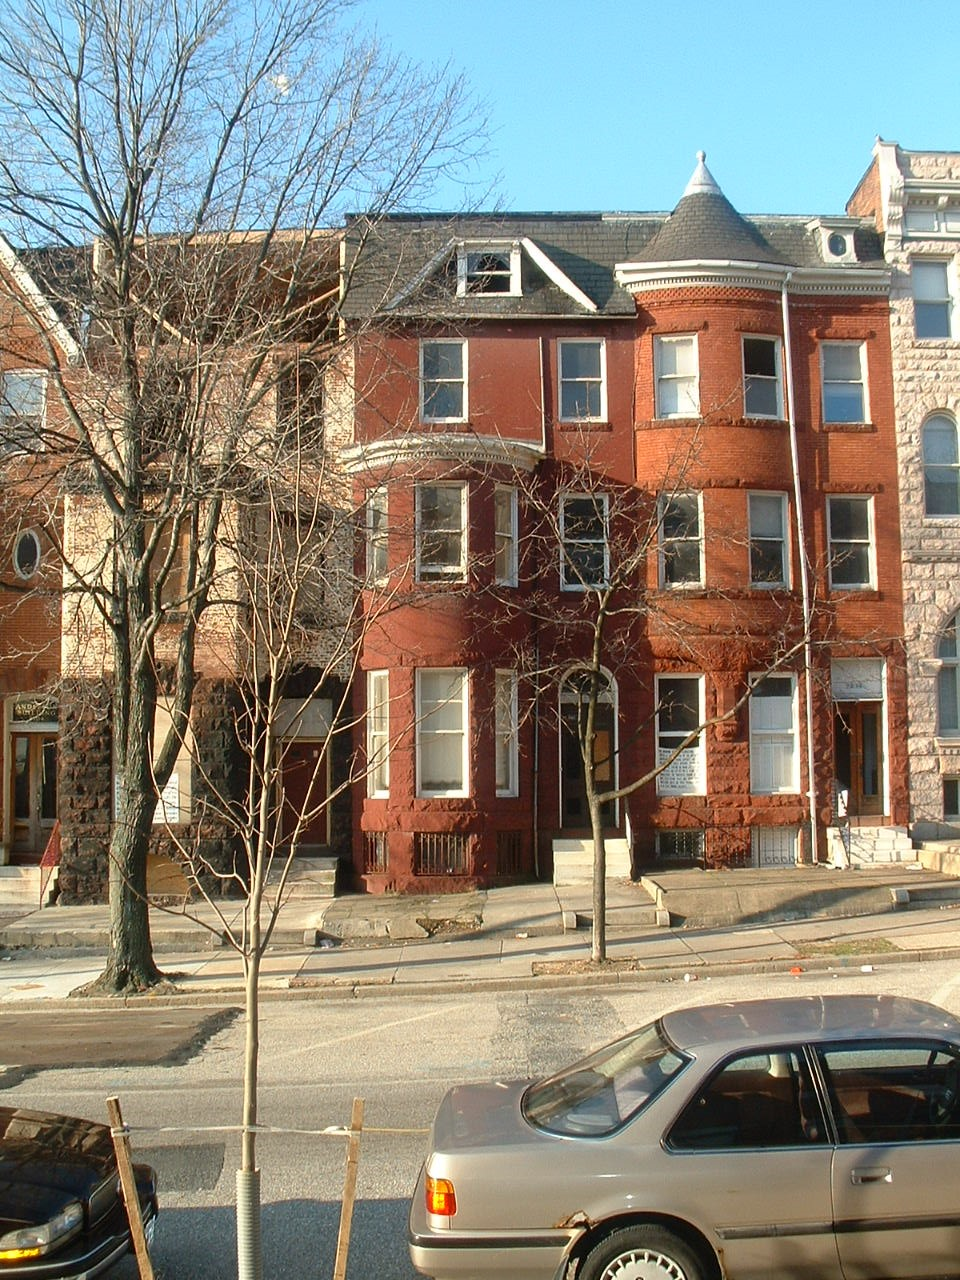 - SP Arch Inc. was hired renovate two large row homes into six condo apartments. Design included restoration of the interior and exterior brick walls, doors and windows. The unique historic front façade details were preserved, not revealing the contemporary interior.